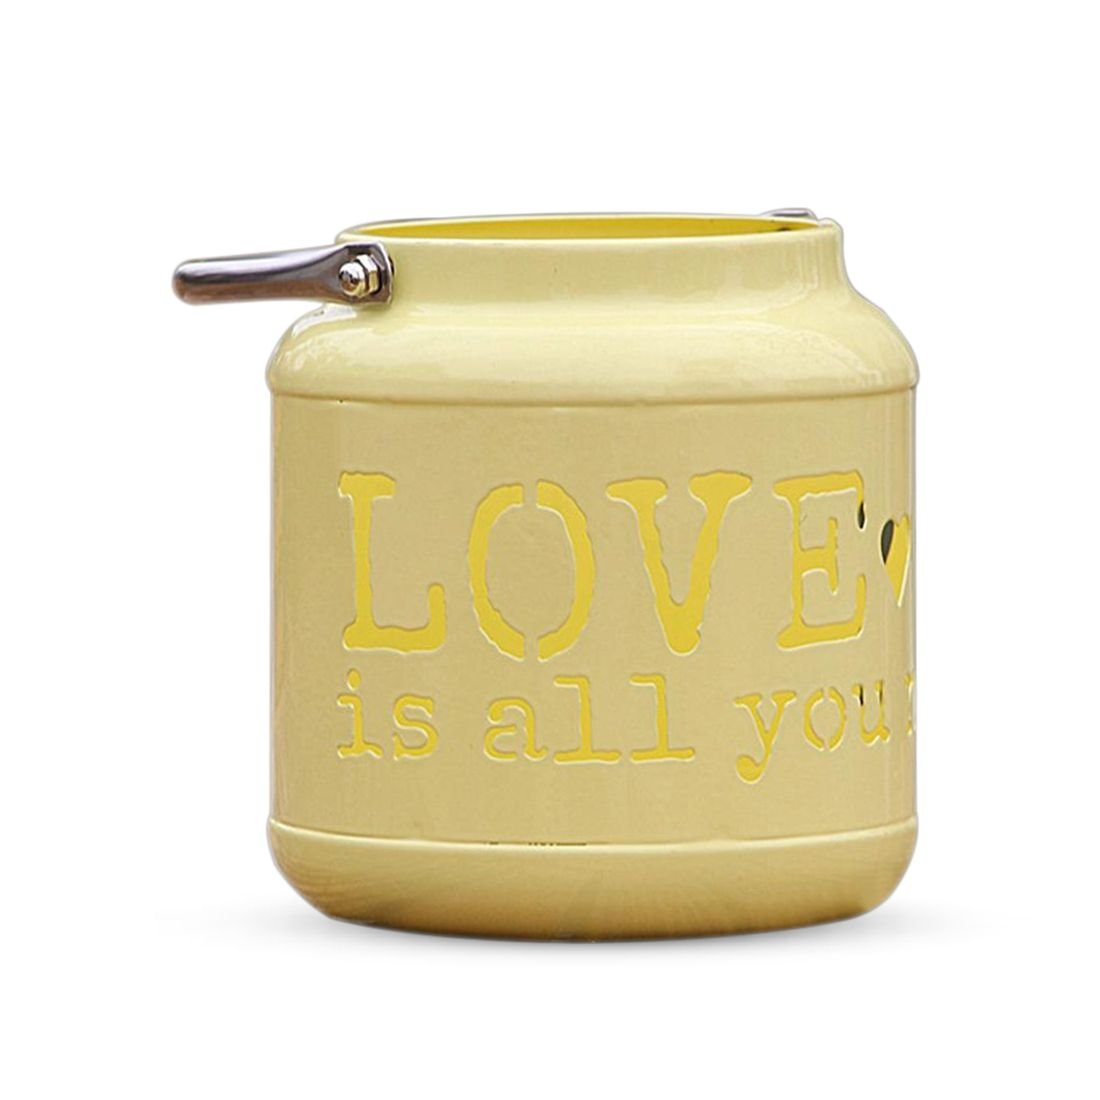 Toogoo Yellow European pastoral home decoration iron hollow hollow LOVE floor lamp candle holder flower pot storage barrel wedding ornaments